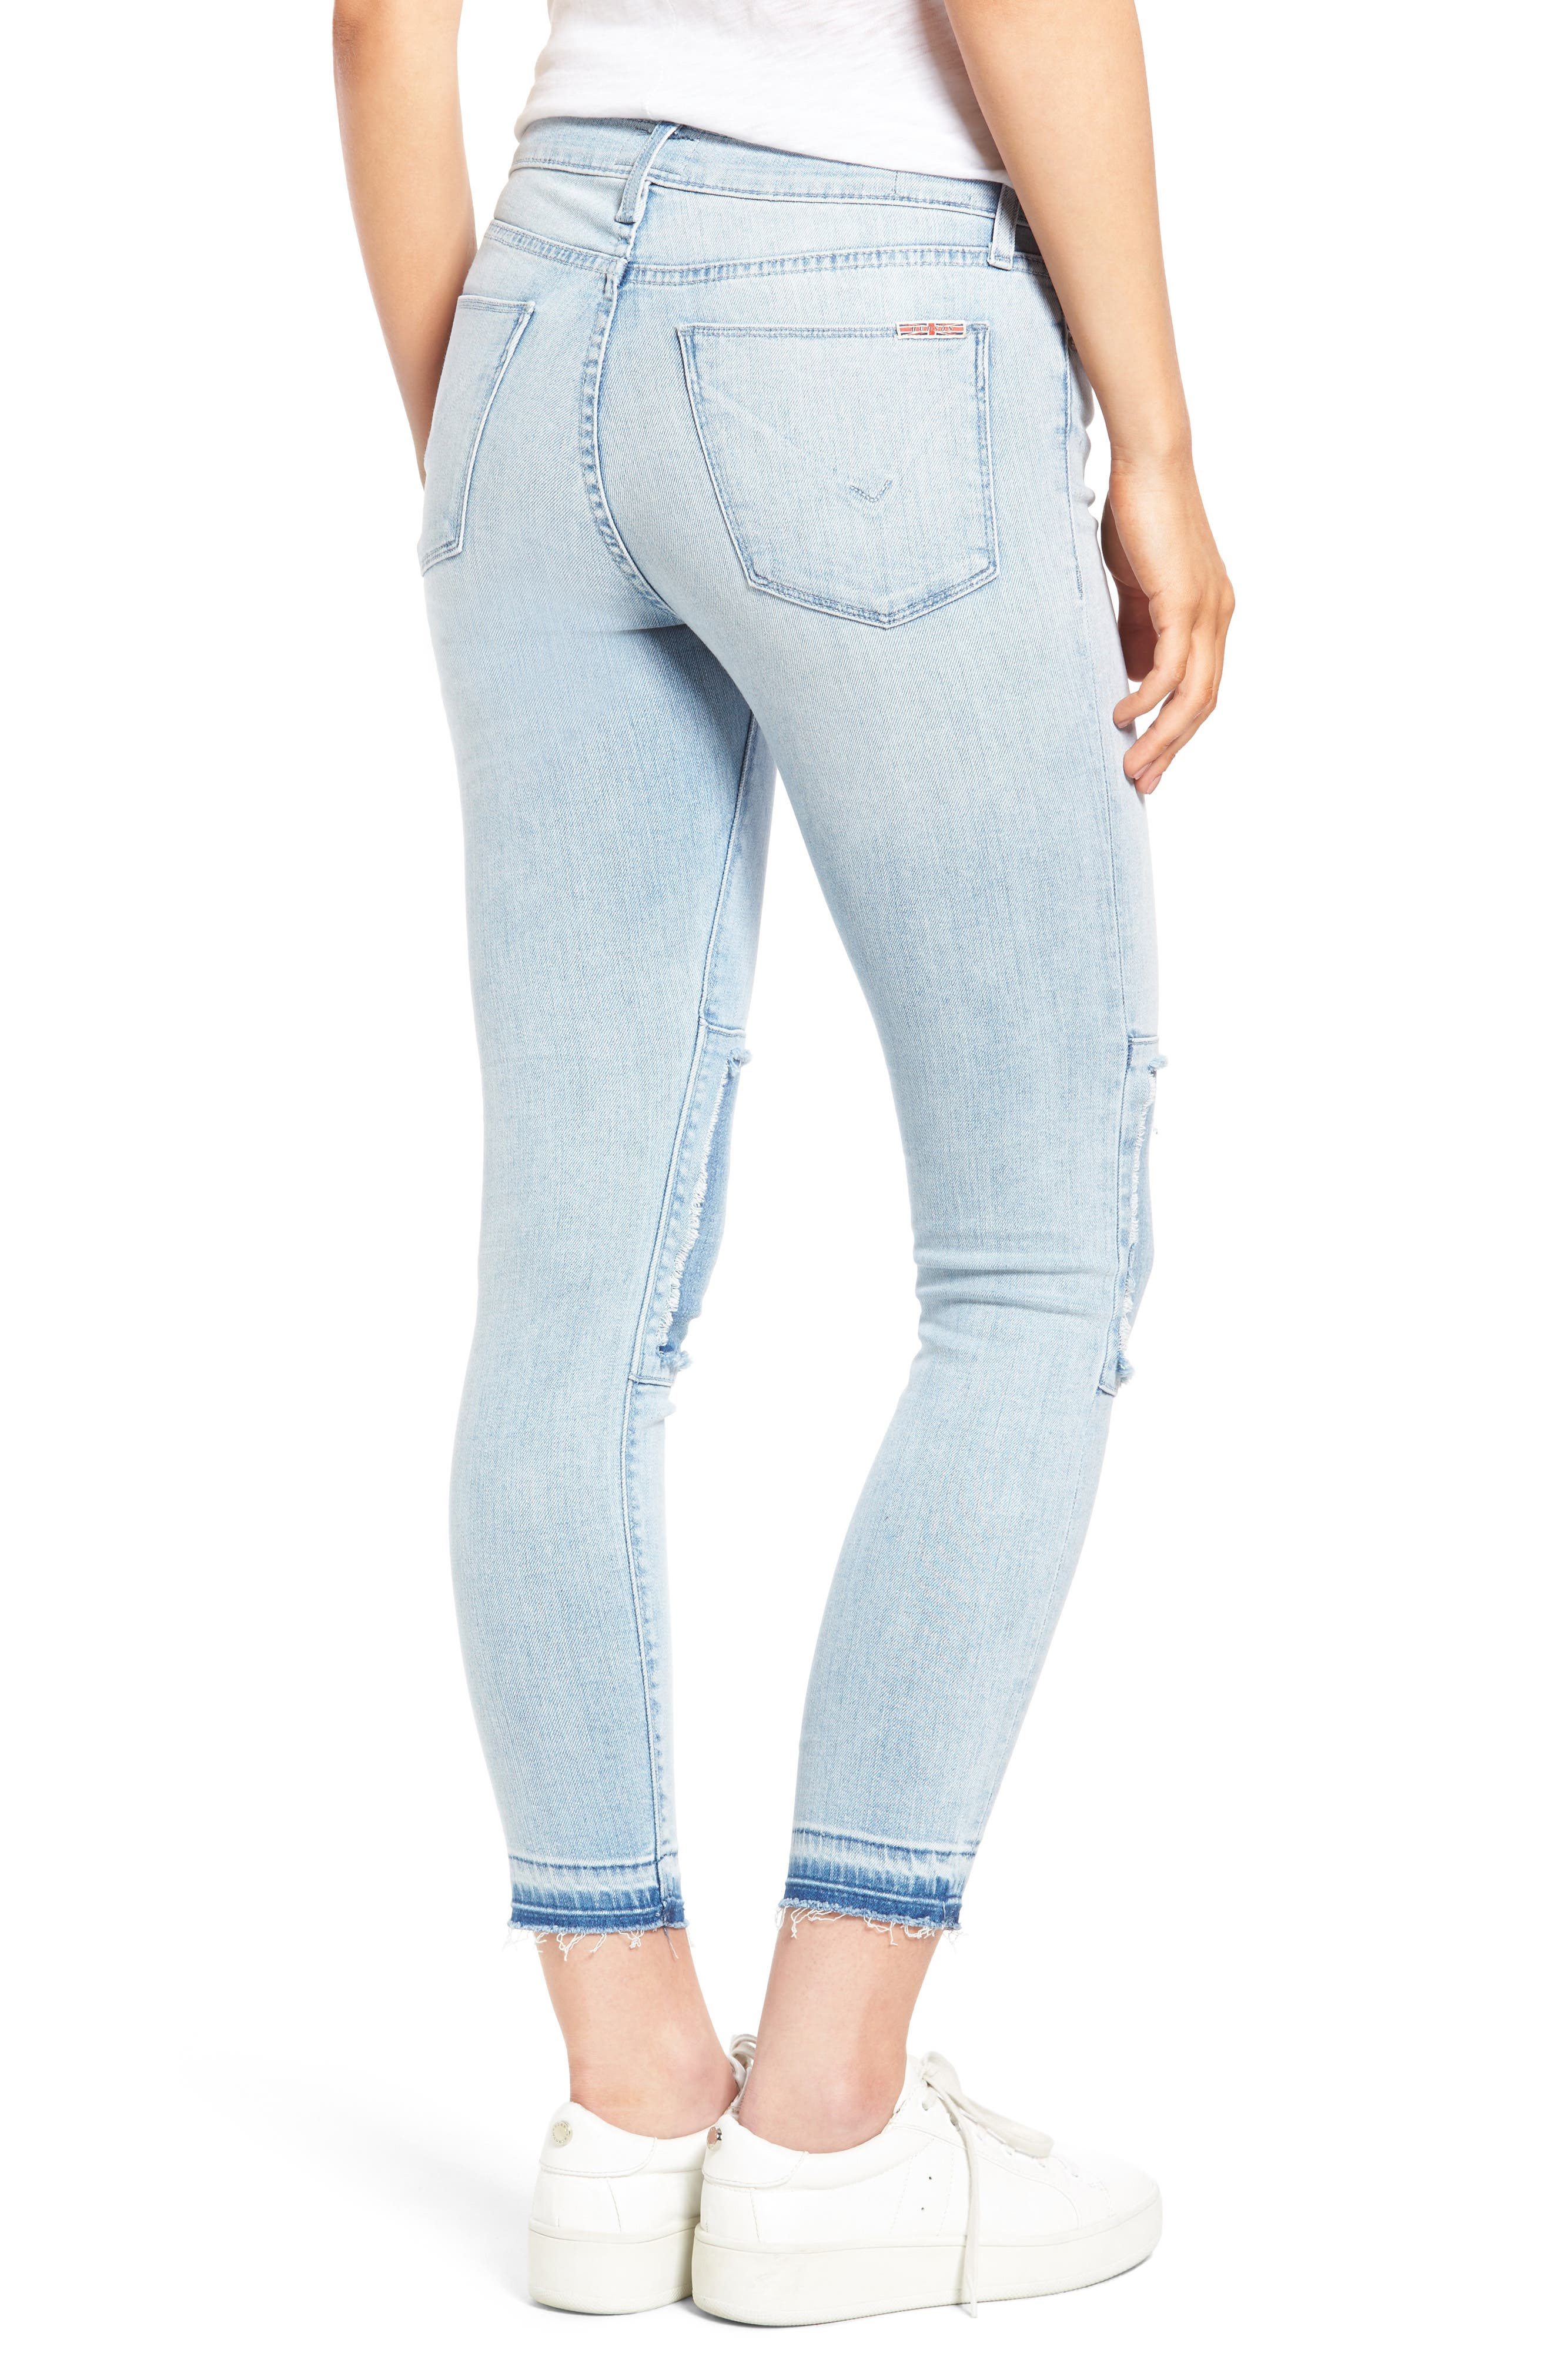 Alternate Image 2  - Hudson Jeans Szzi Mid Rise Patched Skinny Jeans (Venue)